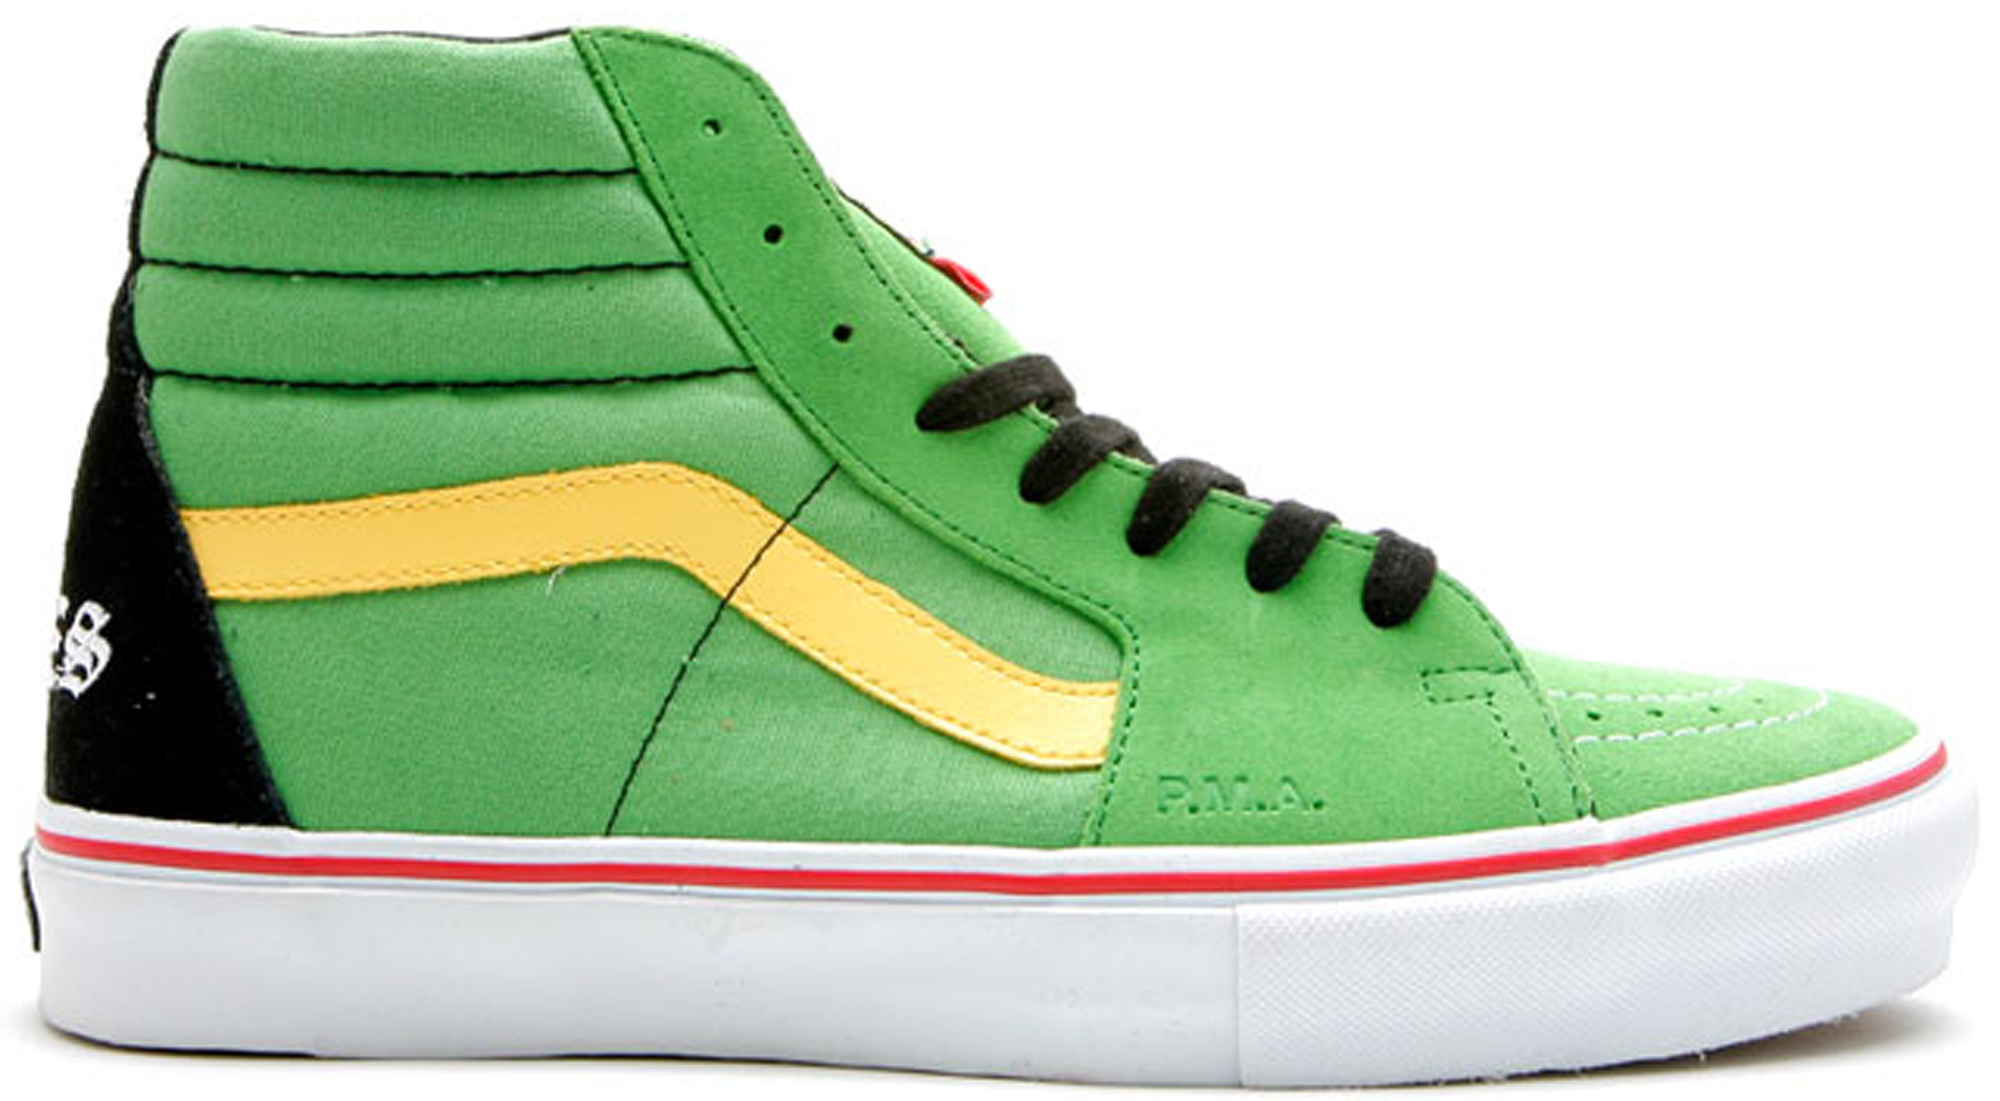 Vans Sk8-Hi Supreme x Bad Brains Green